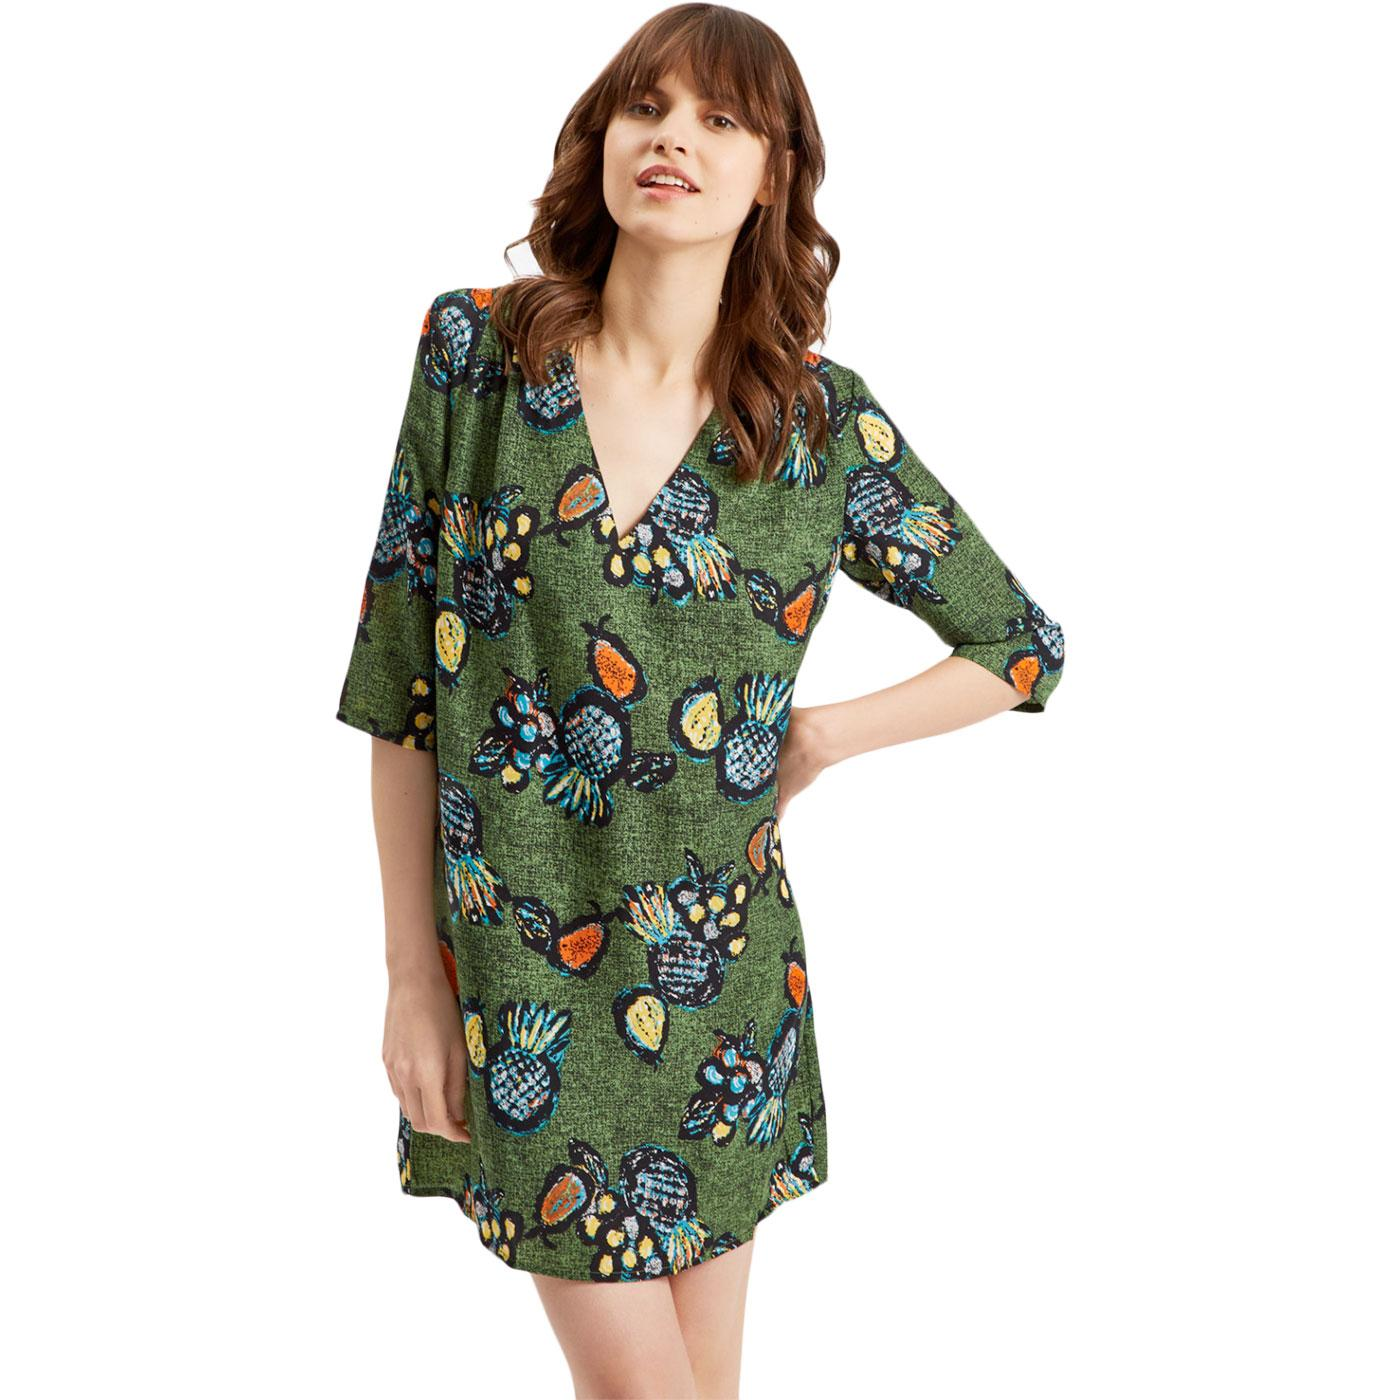 Molly TRAFFIC PEOPLE Tropicana Print Summer Dress